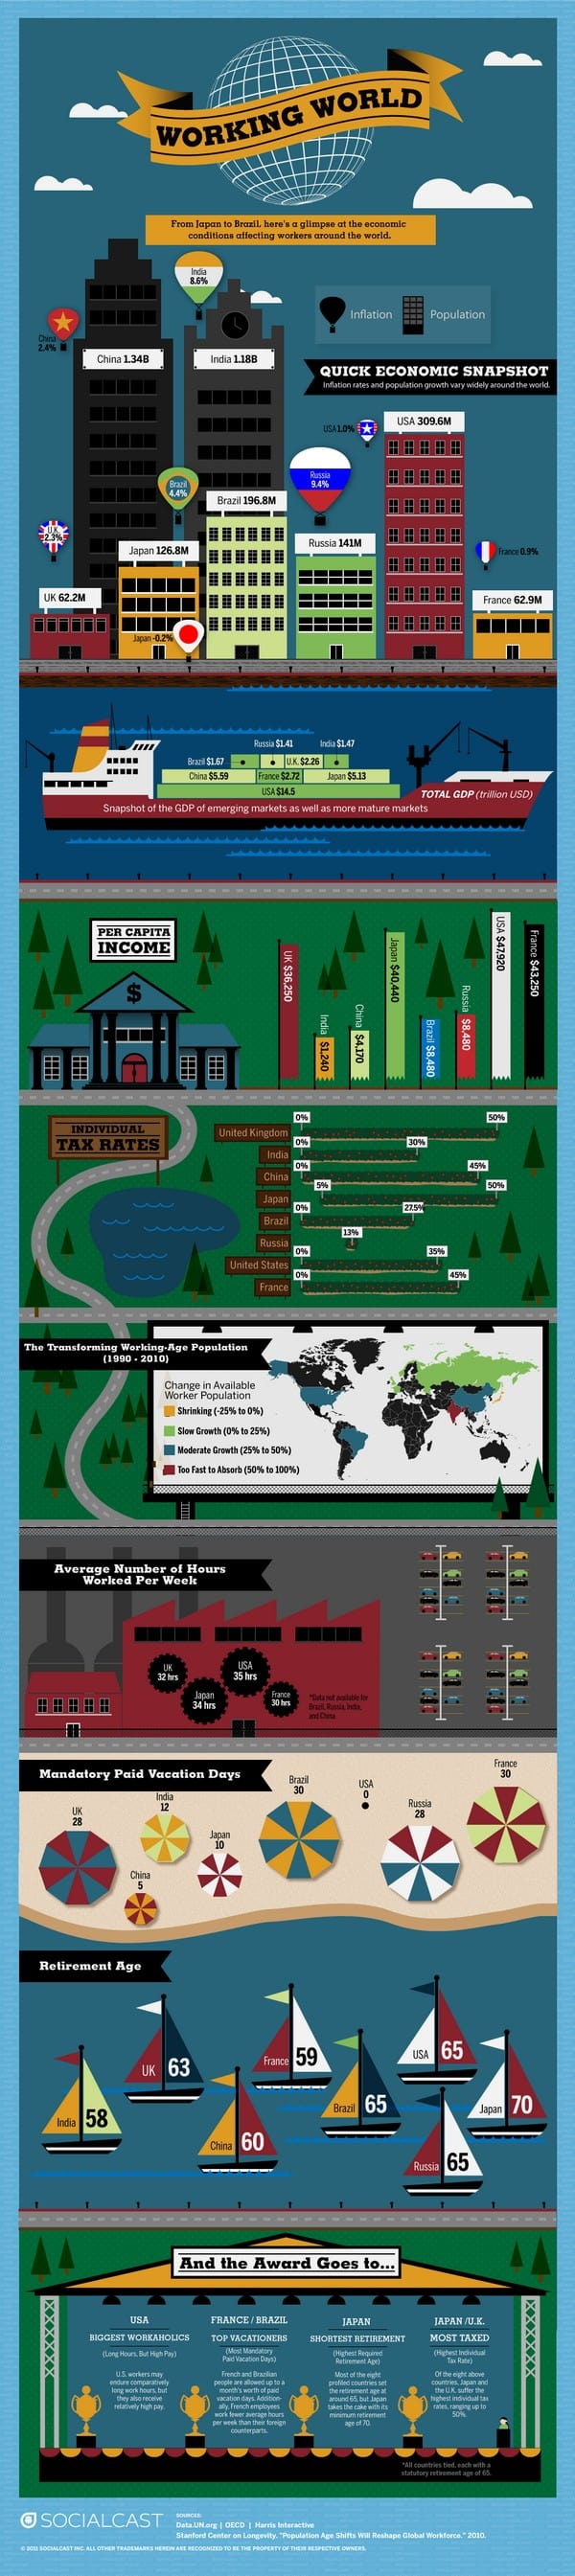 working world infographic